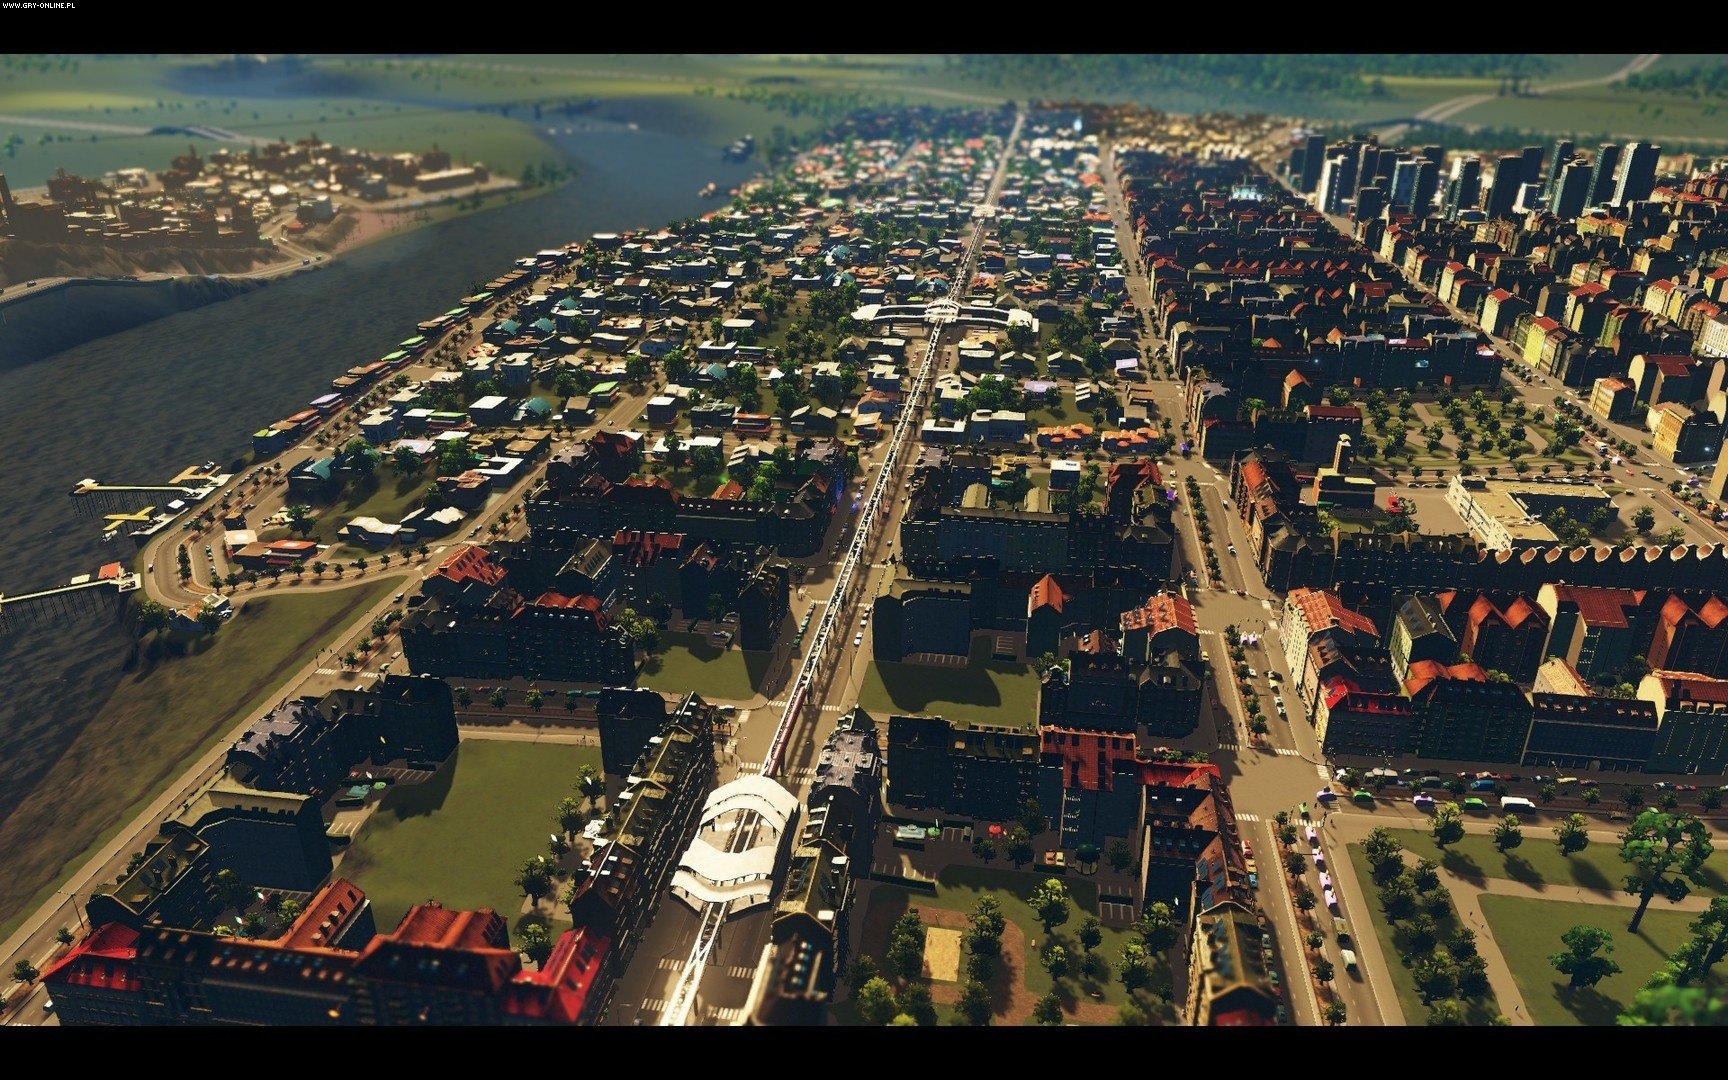 Cities: Skylines - Mass Transit PC Games Image 2/11, Colossal Order, Paradox Interactive